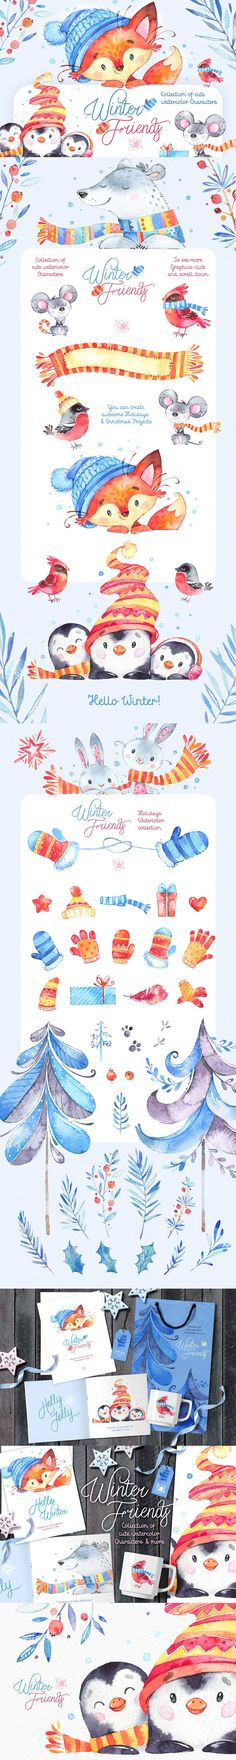 This Great Winter collection is just what you needed for the perfect #invitations, #Holidays projects, paper products, party decorations, #printable, #greetings cards, #posters, #stationery, #scrapbooking, stickers, t-shirts, baby clothes, #web #designs and much more.